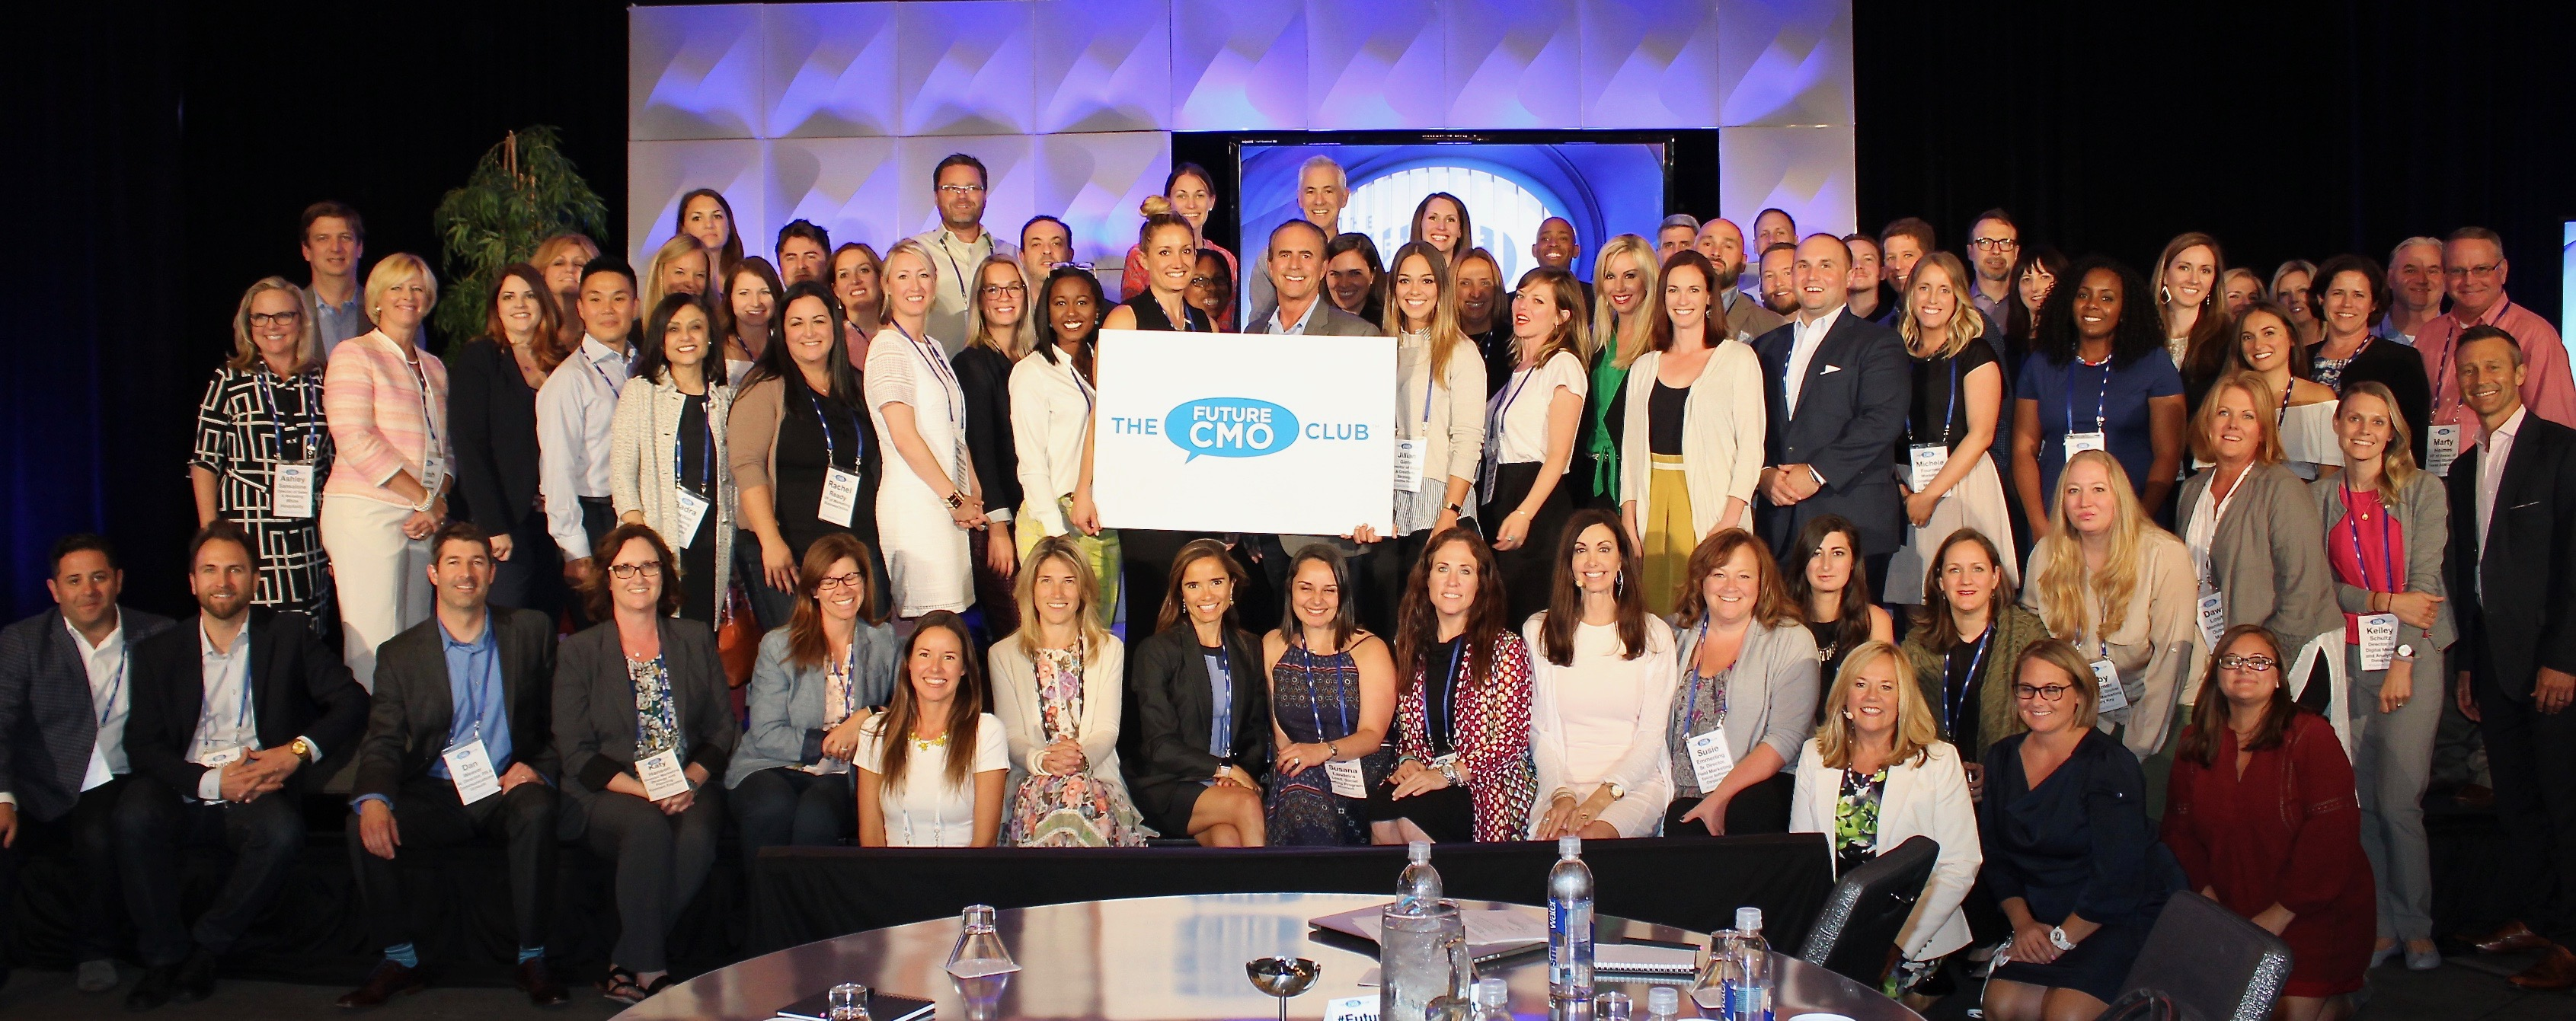 The Future CMO Club Marketing & Mentoring Group Photo